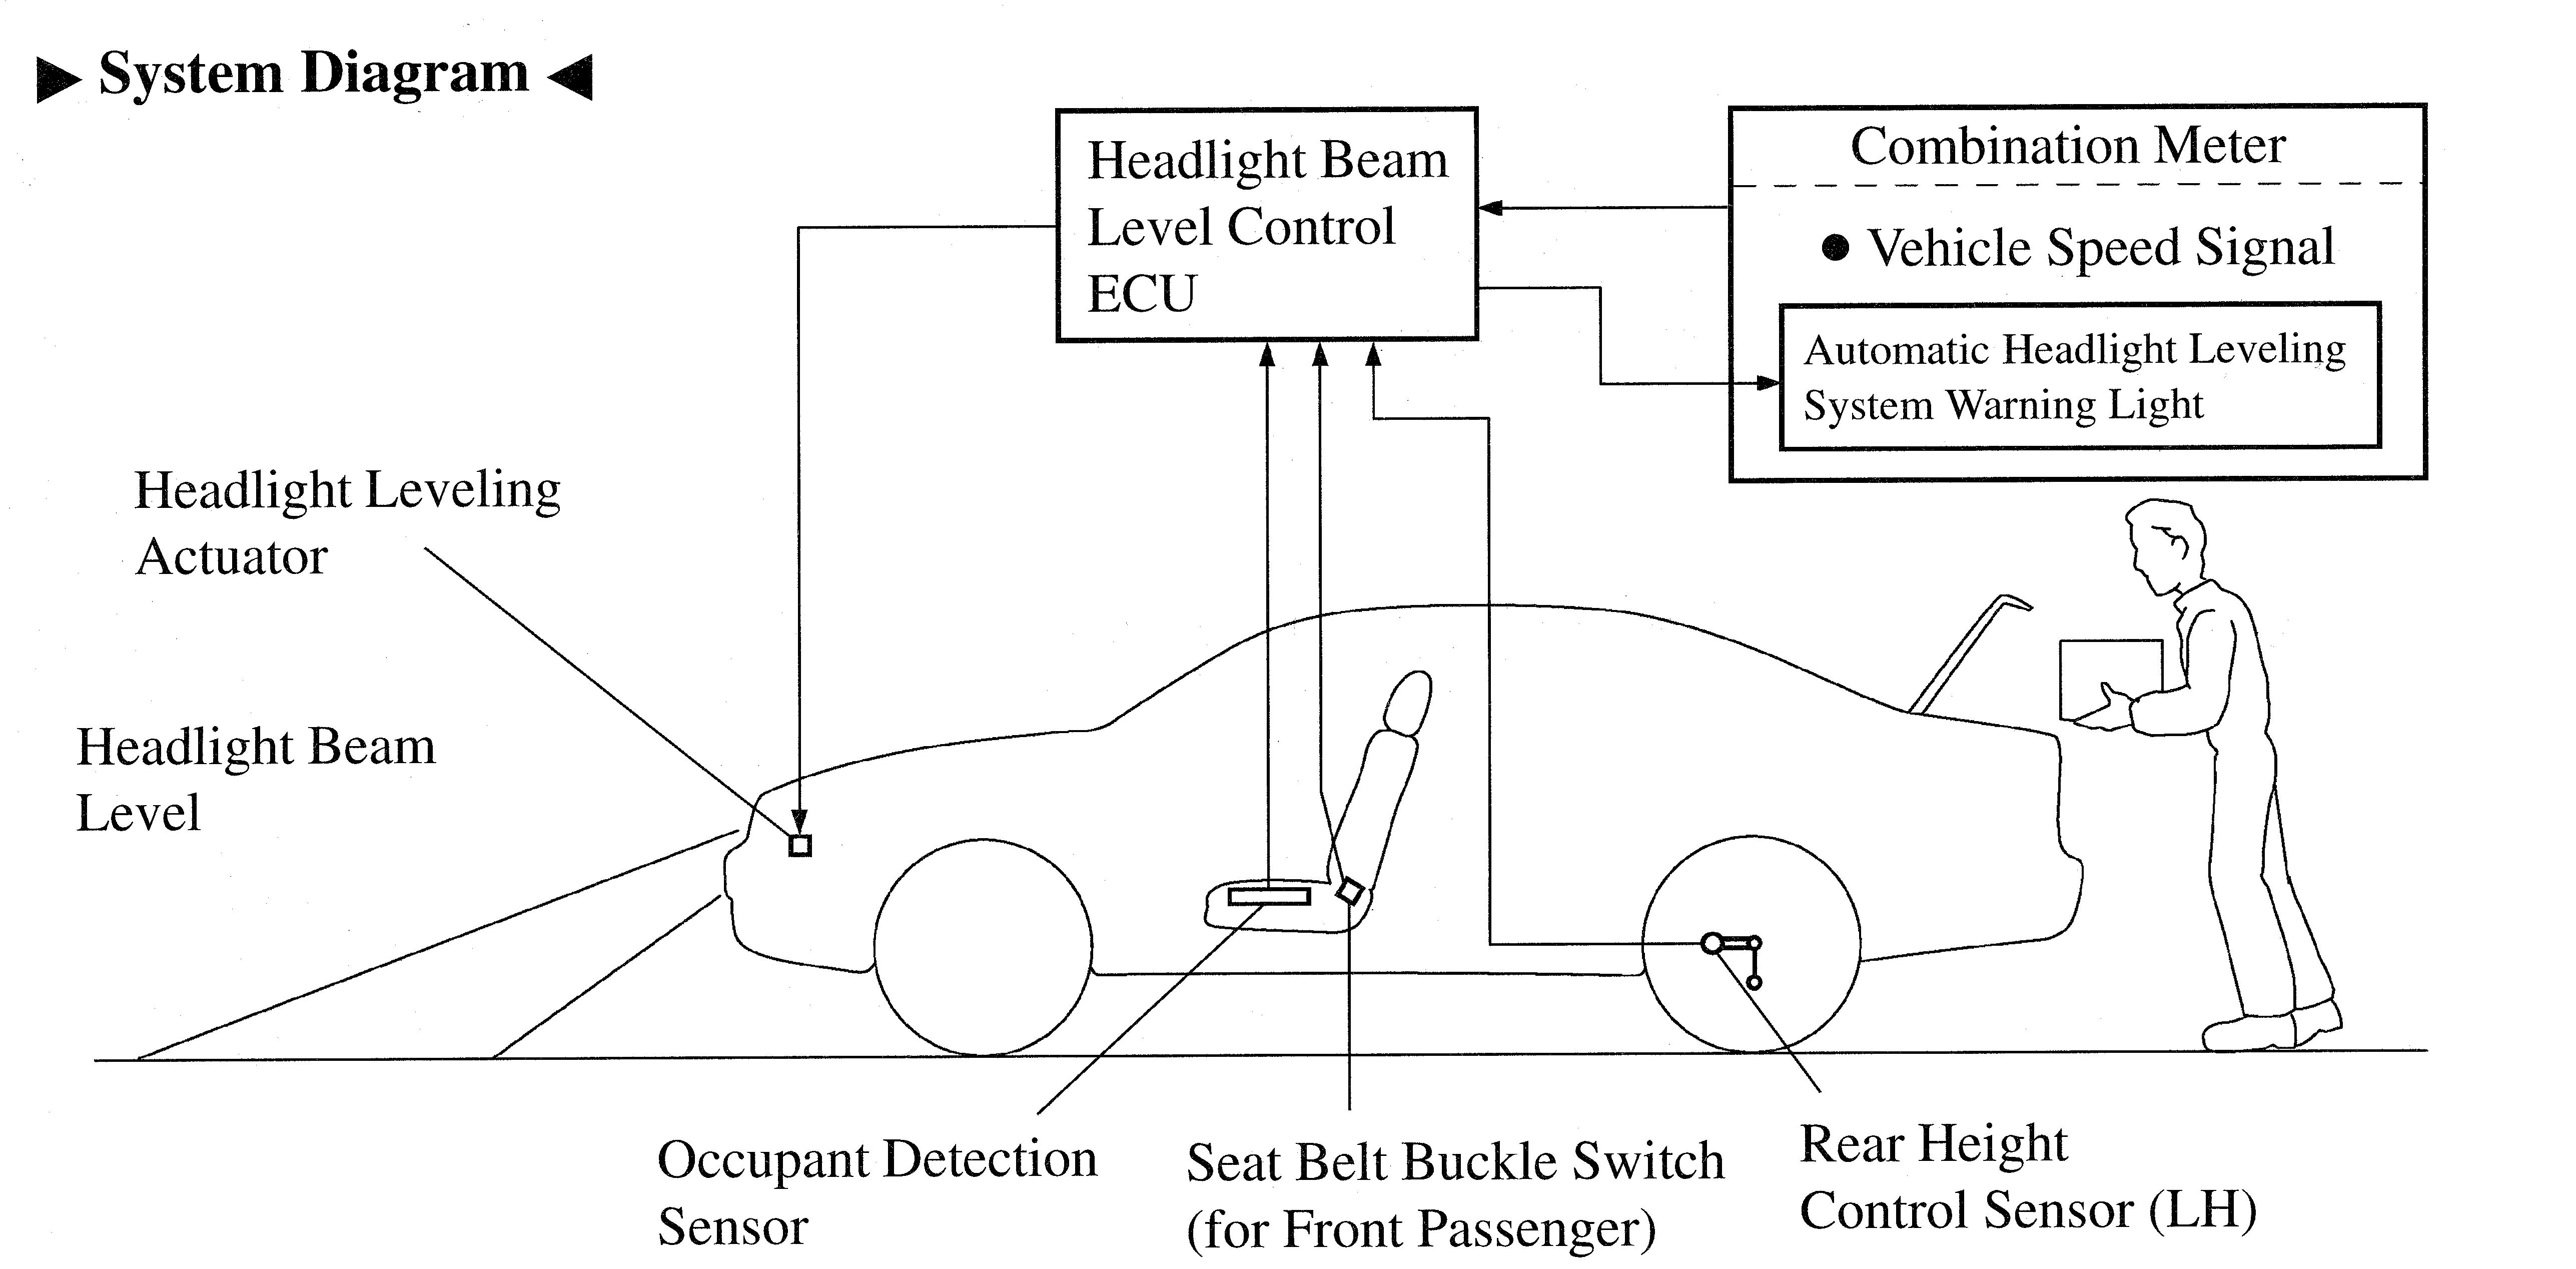 02 Toyota Tacoma Engine Diagram Wiring Library Oxygen Sensor Celica Vvti Electrical Work U2022 2002 Gt